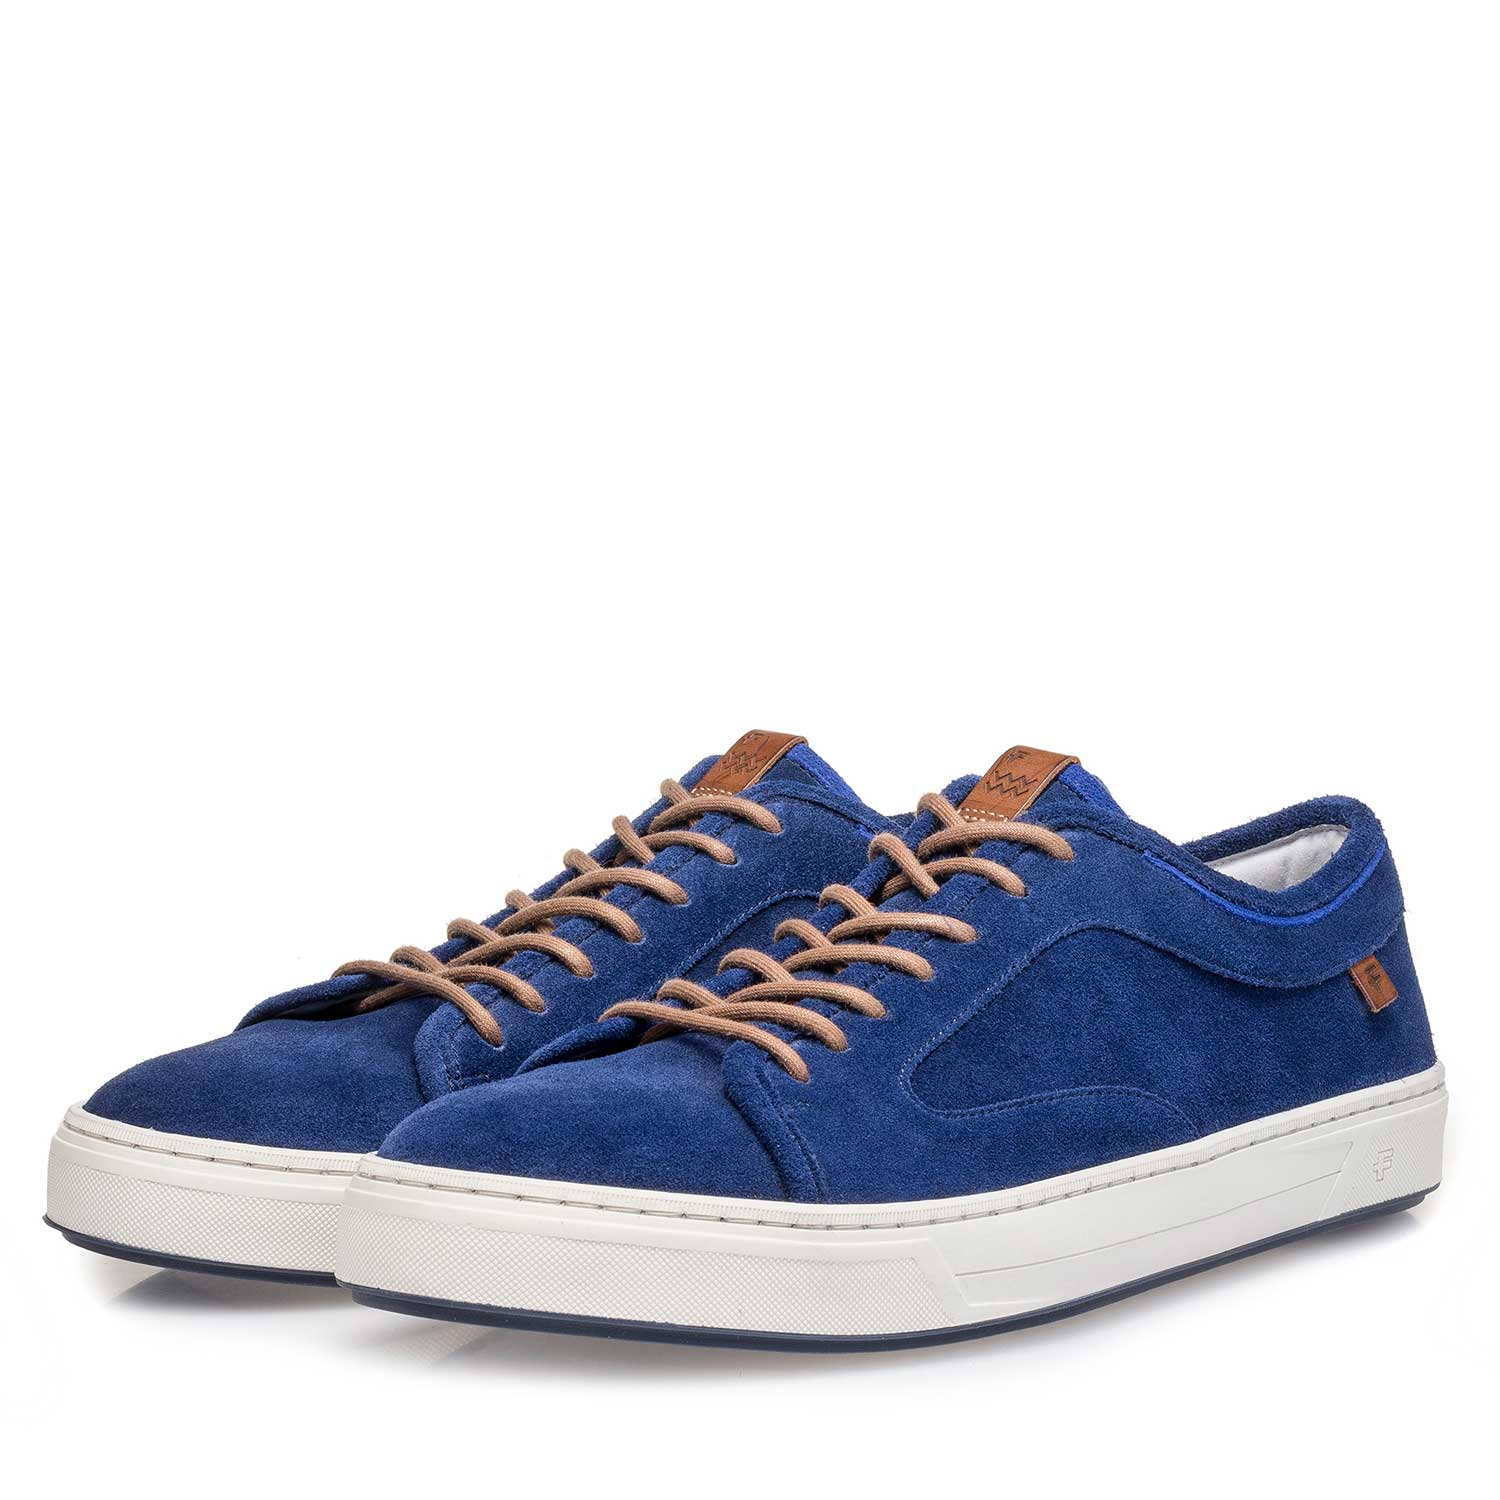 13466/02 - Blue washed suede leather sneaker